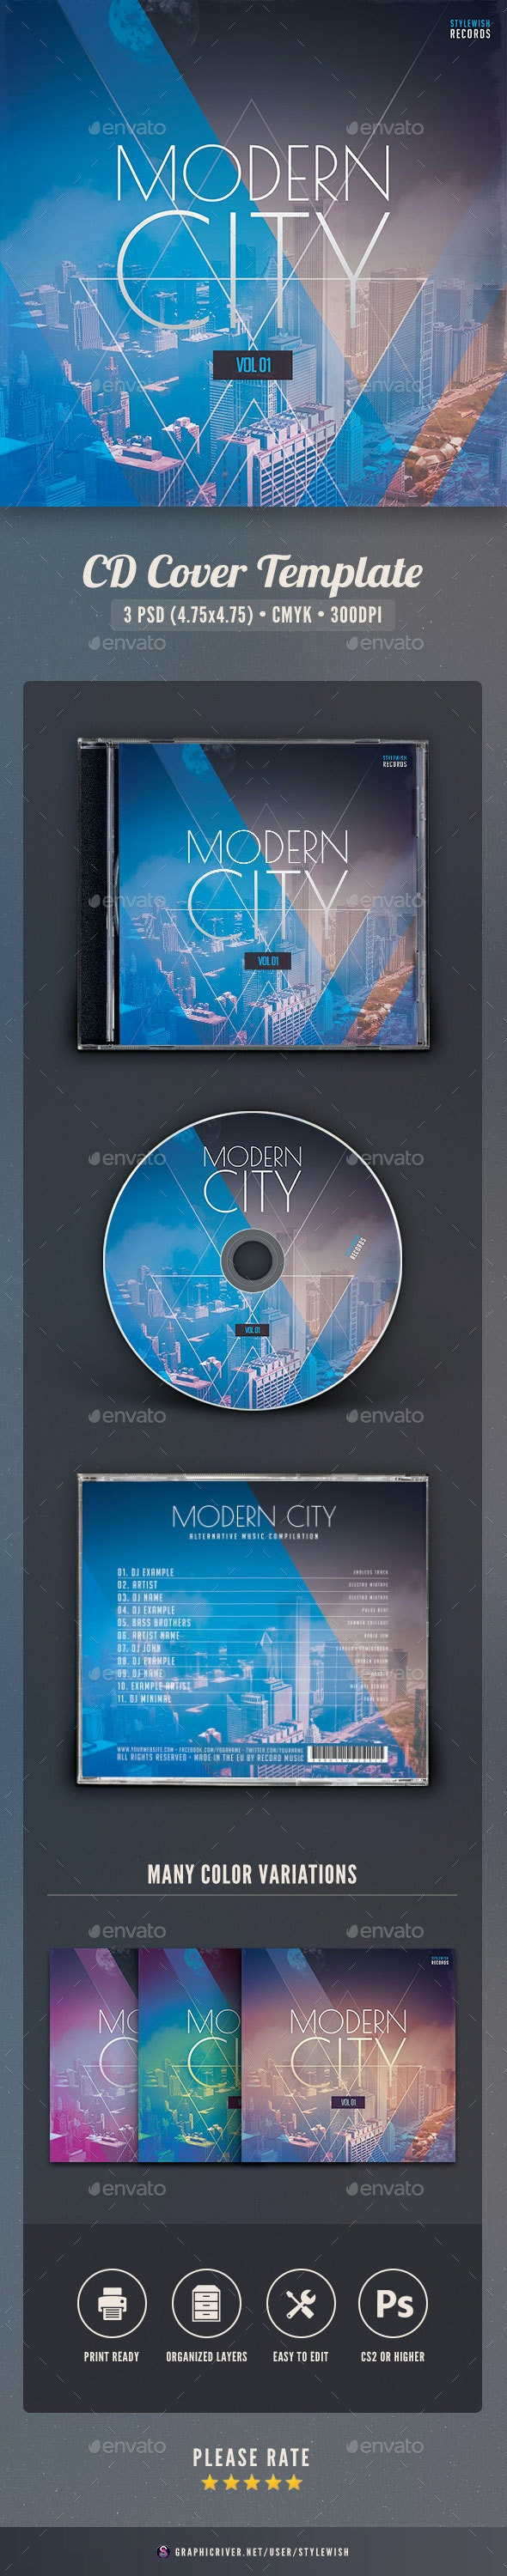 Modern City CD Cover Artwork - CD & DVD Artwork Print Templates